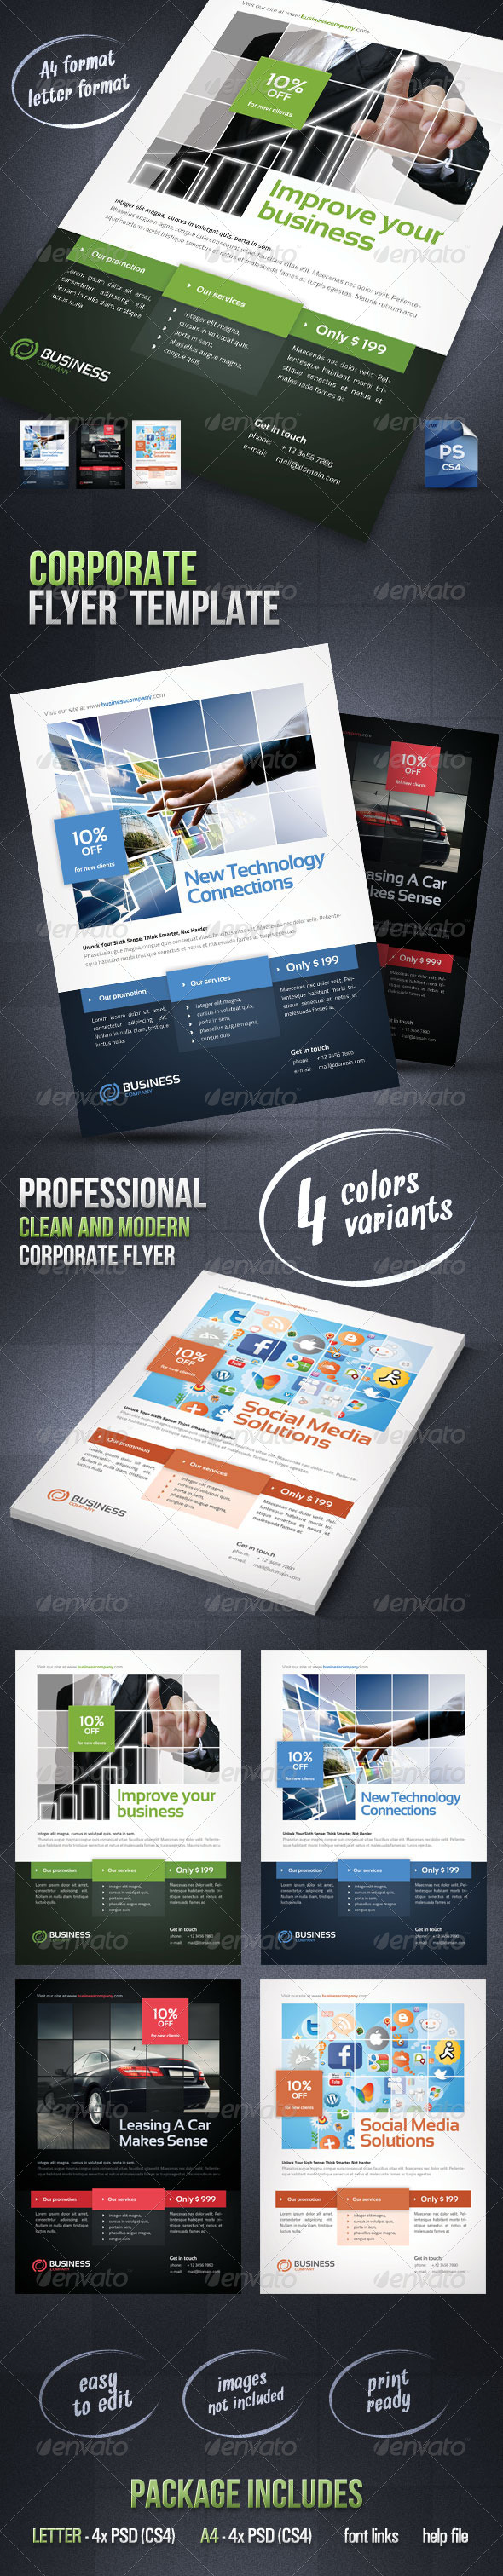 GraphicRiver Corporate Flyer Template 3075362